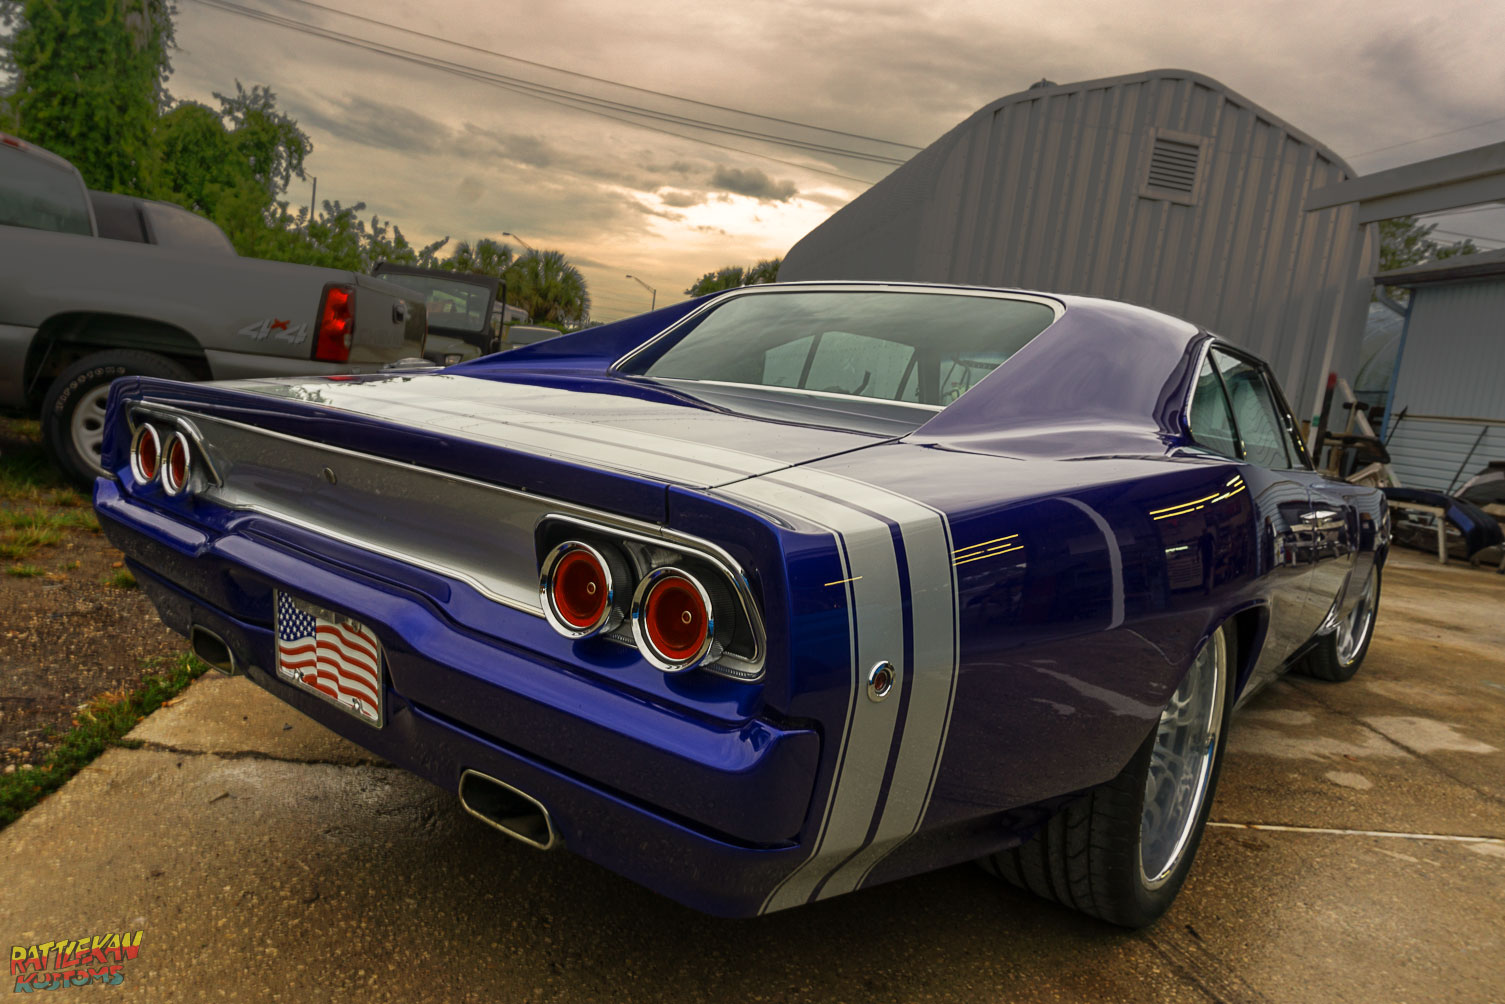 Dodge Charger painted by RattleKan Kustoms in Melbourne FL